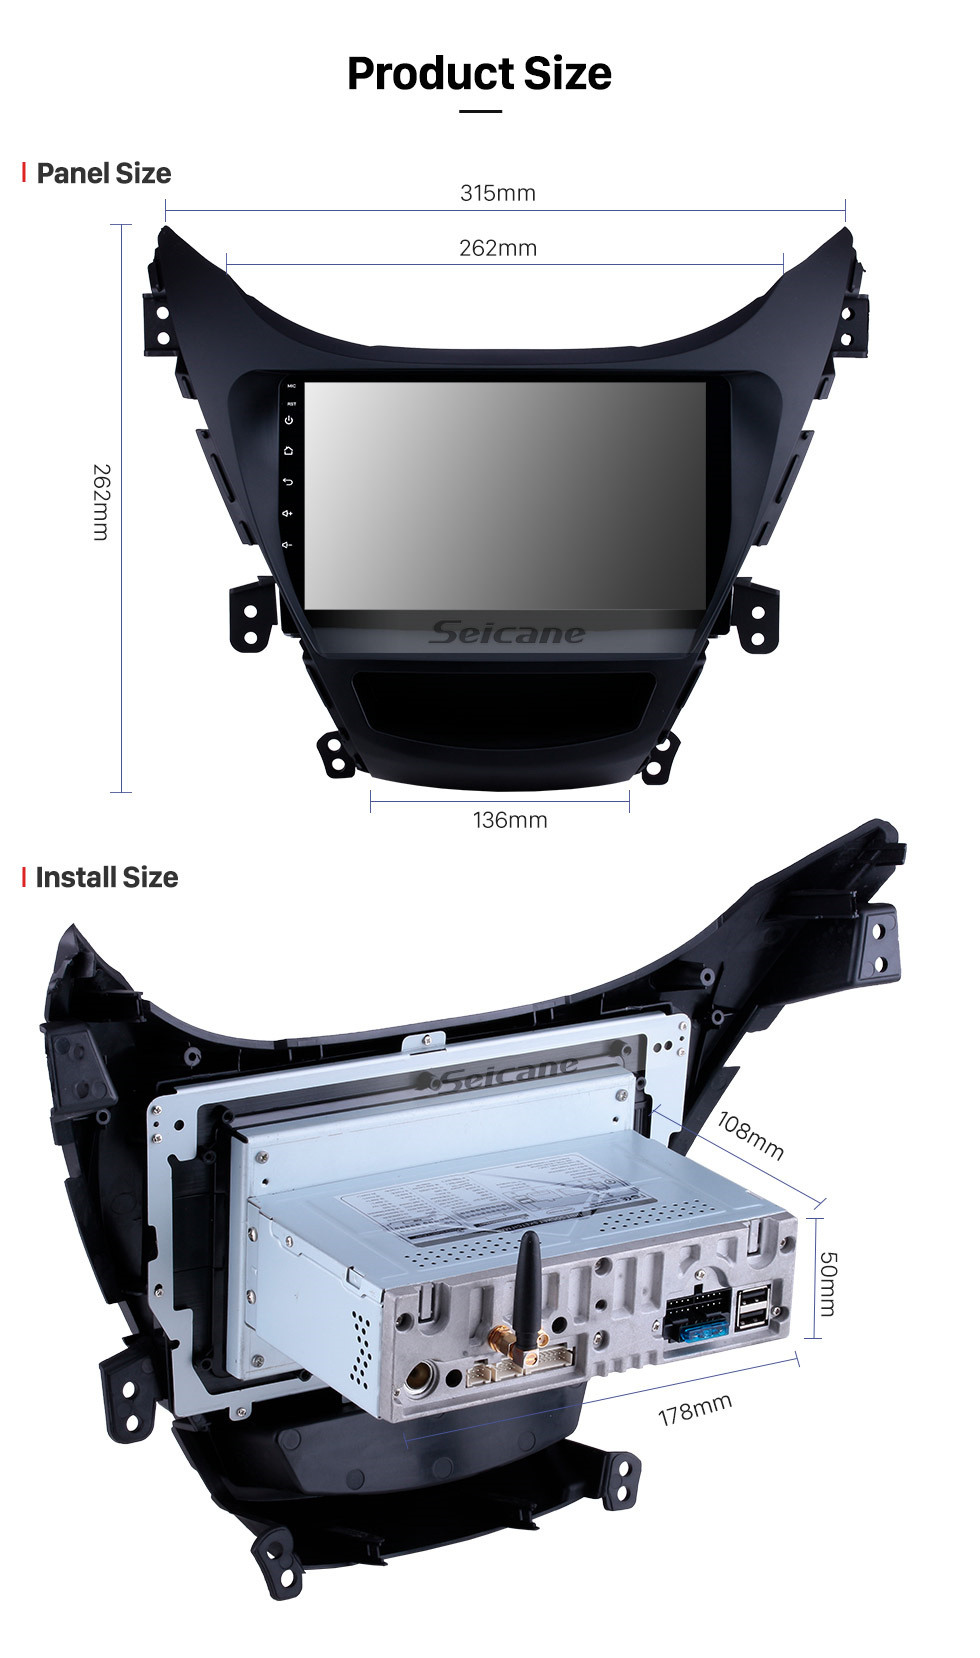 Seicane 9 inch 2011 2012 2013  Hyundai Elantra Radio Replacement with Aftermarket Car Bluetooth GPS System 1024*600 Multi-touch Capacitive Screen 3G WiFi Mirror Link OBD2 AUX HD 1080P Video DVR